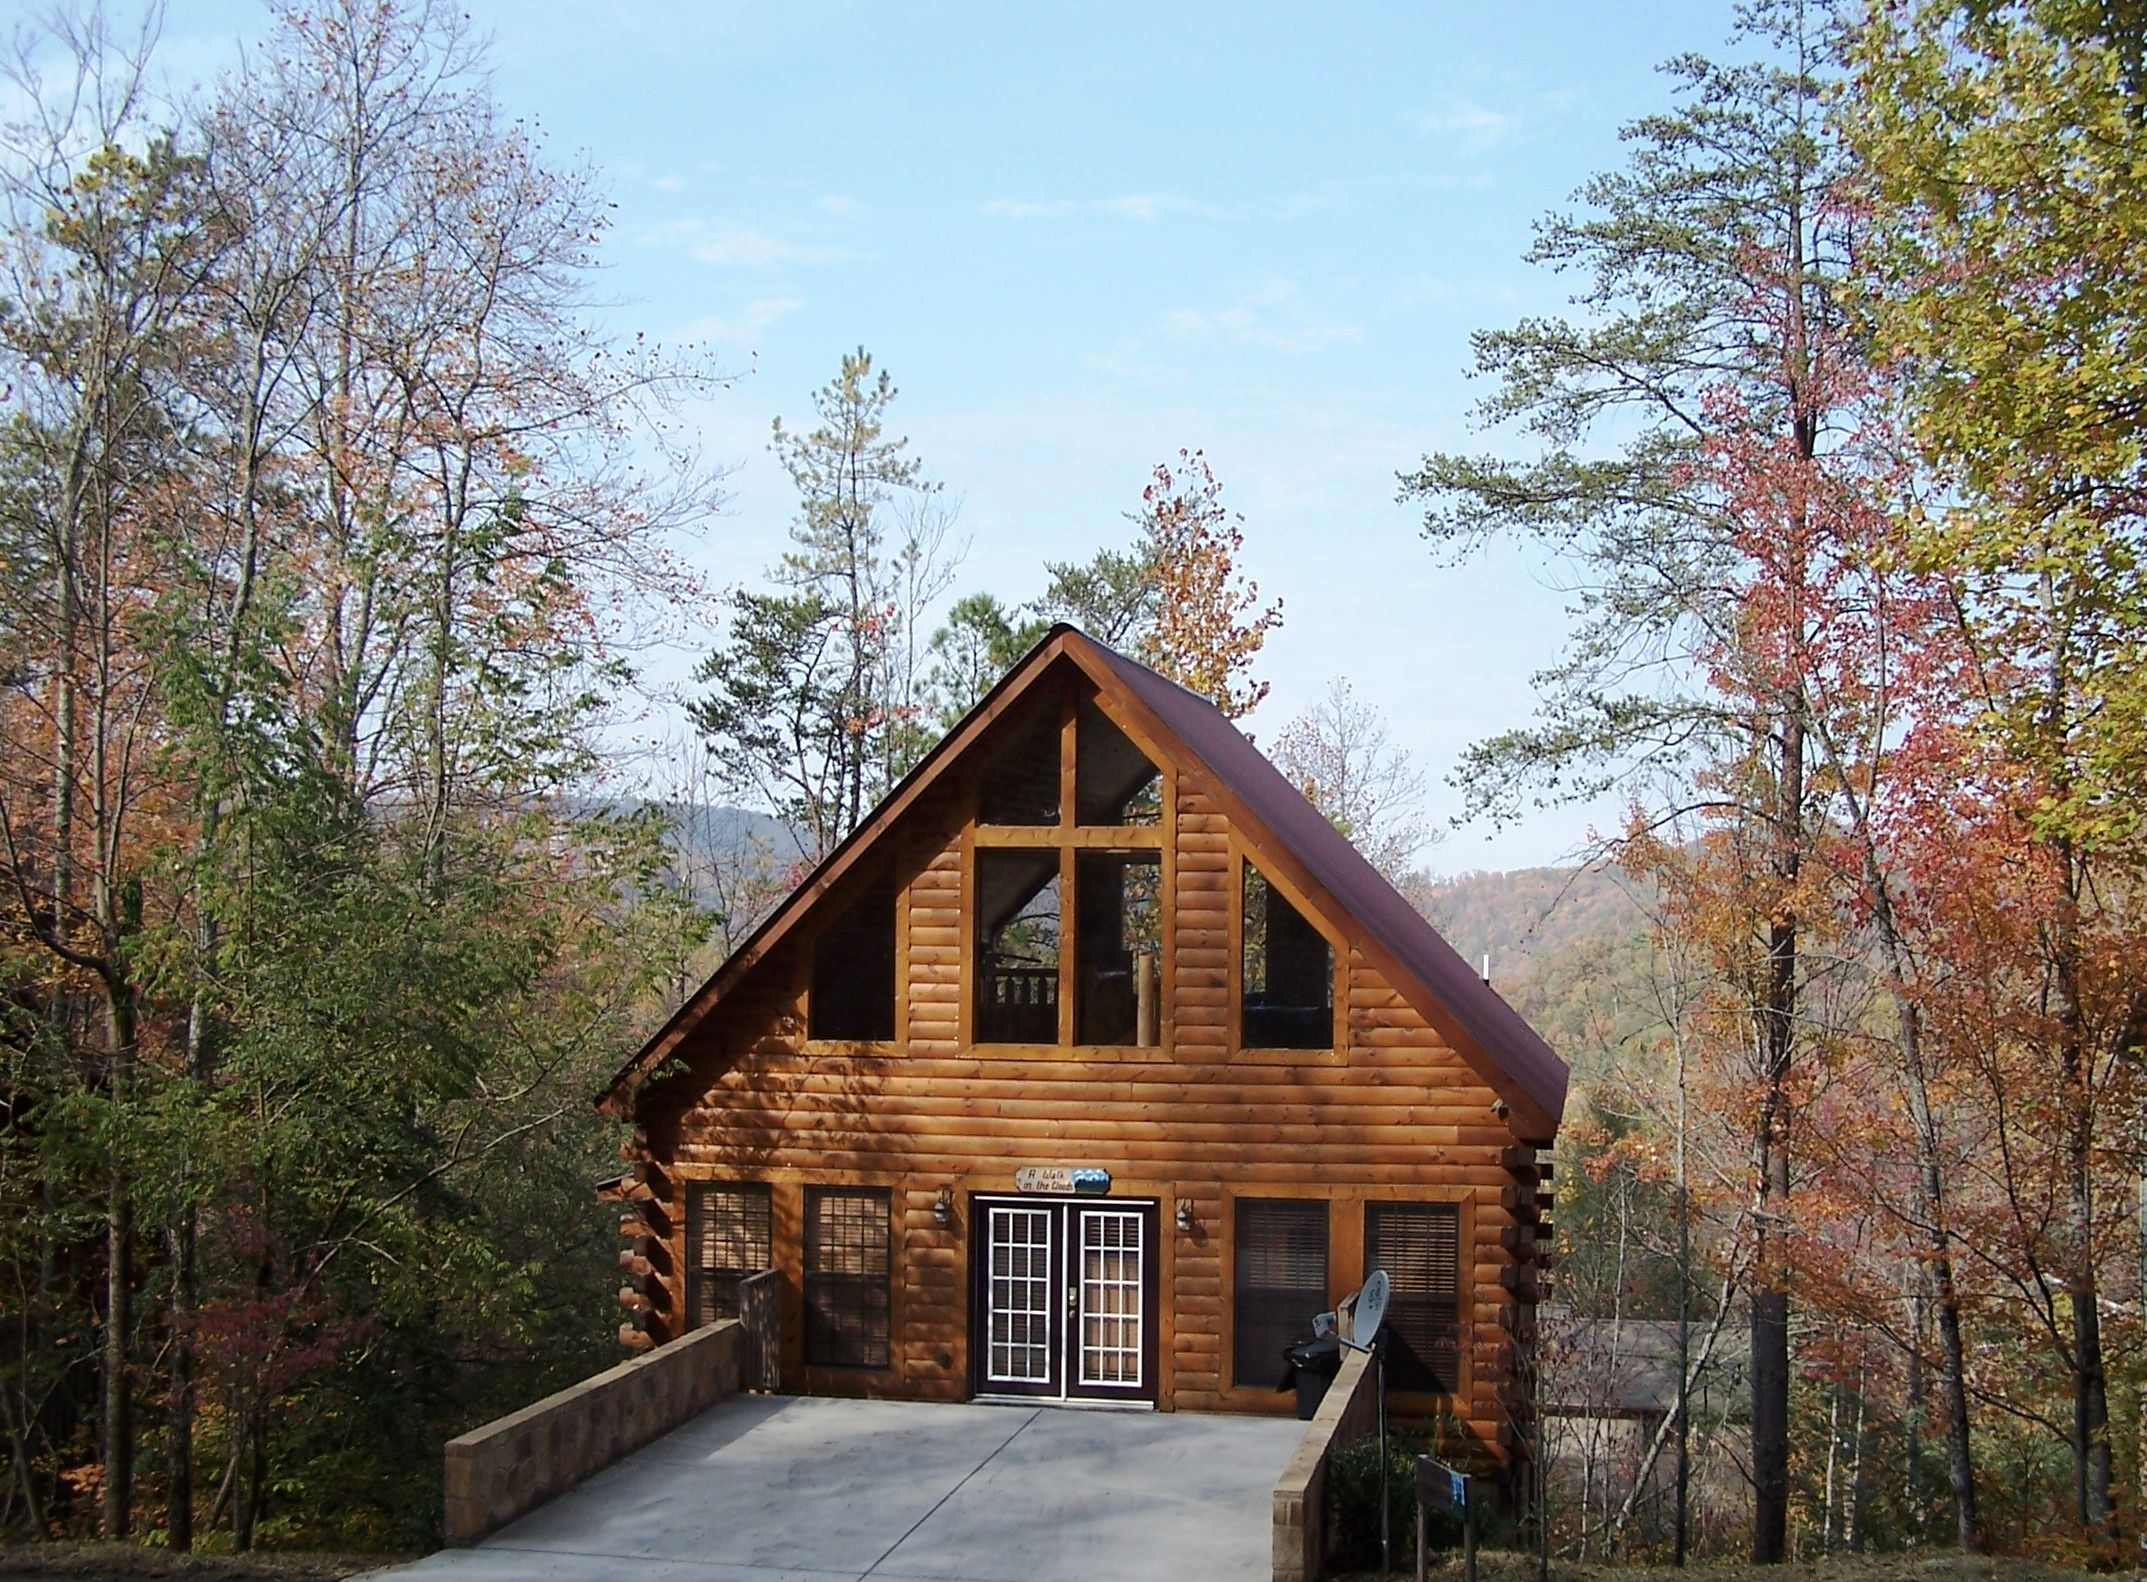 tn il georgia mountains pet rentals x cabins of friendly cheap new gatlinburg tennessee galena cabin photo